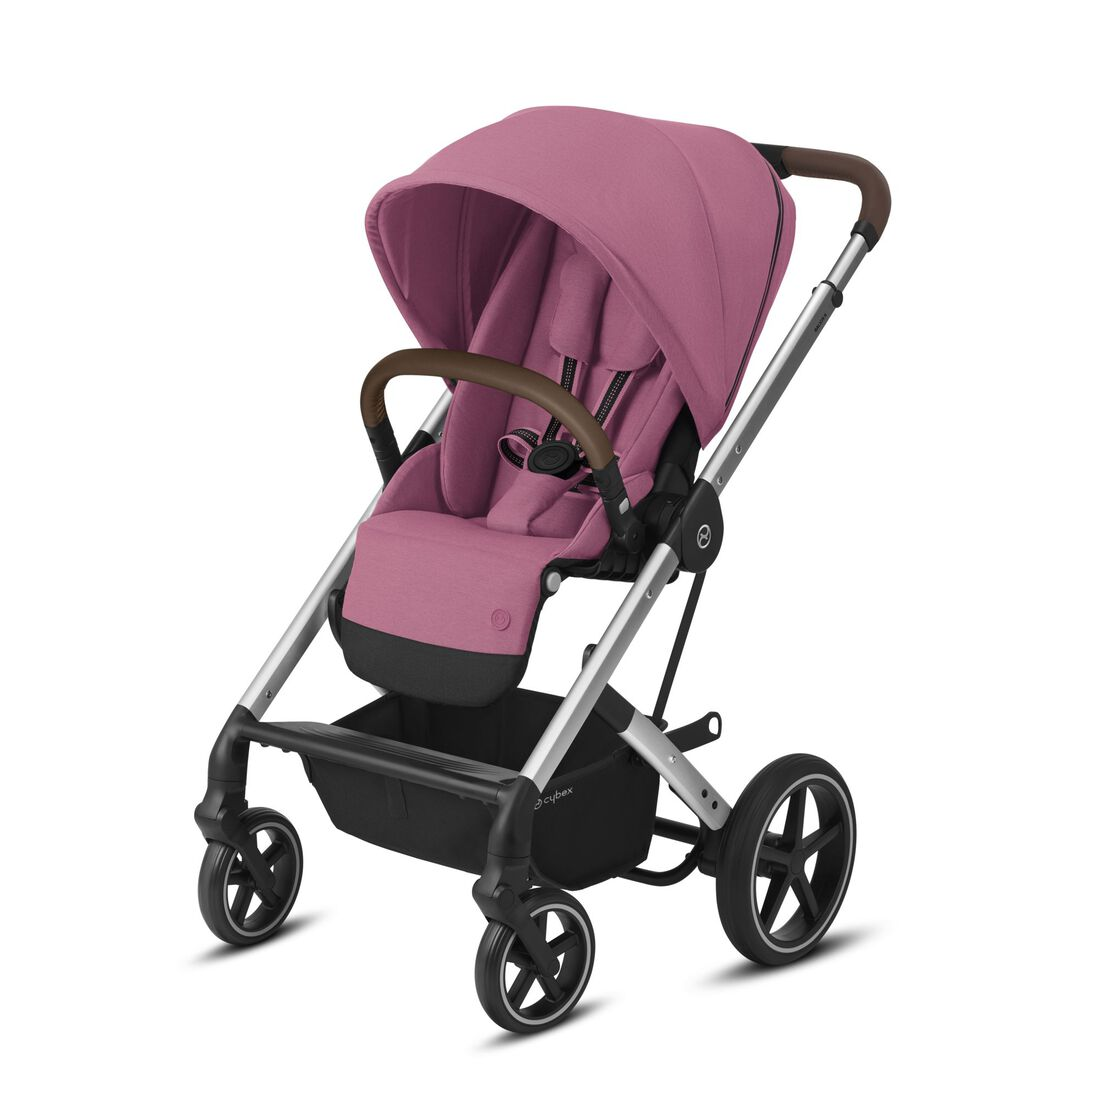 CYBEX Balios S Lux - Magnolia Pink (Silver Frame) in Magnolia Pink (Silver Frame) large image number 1